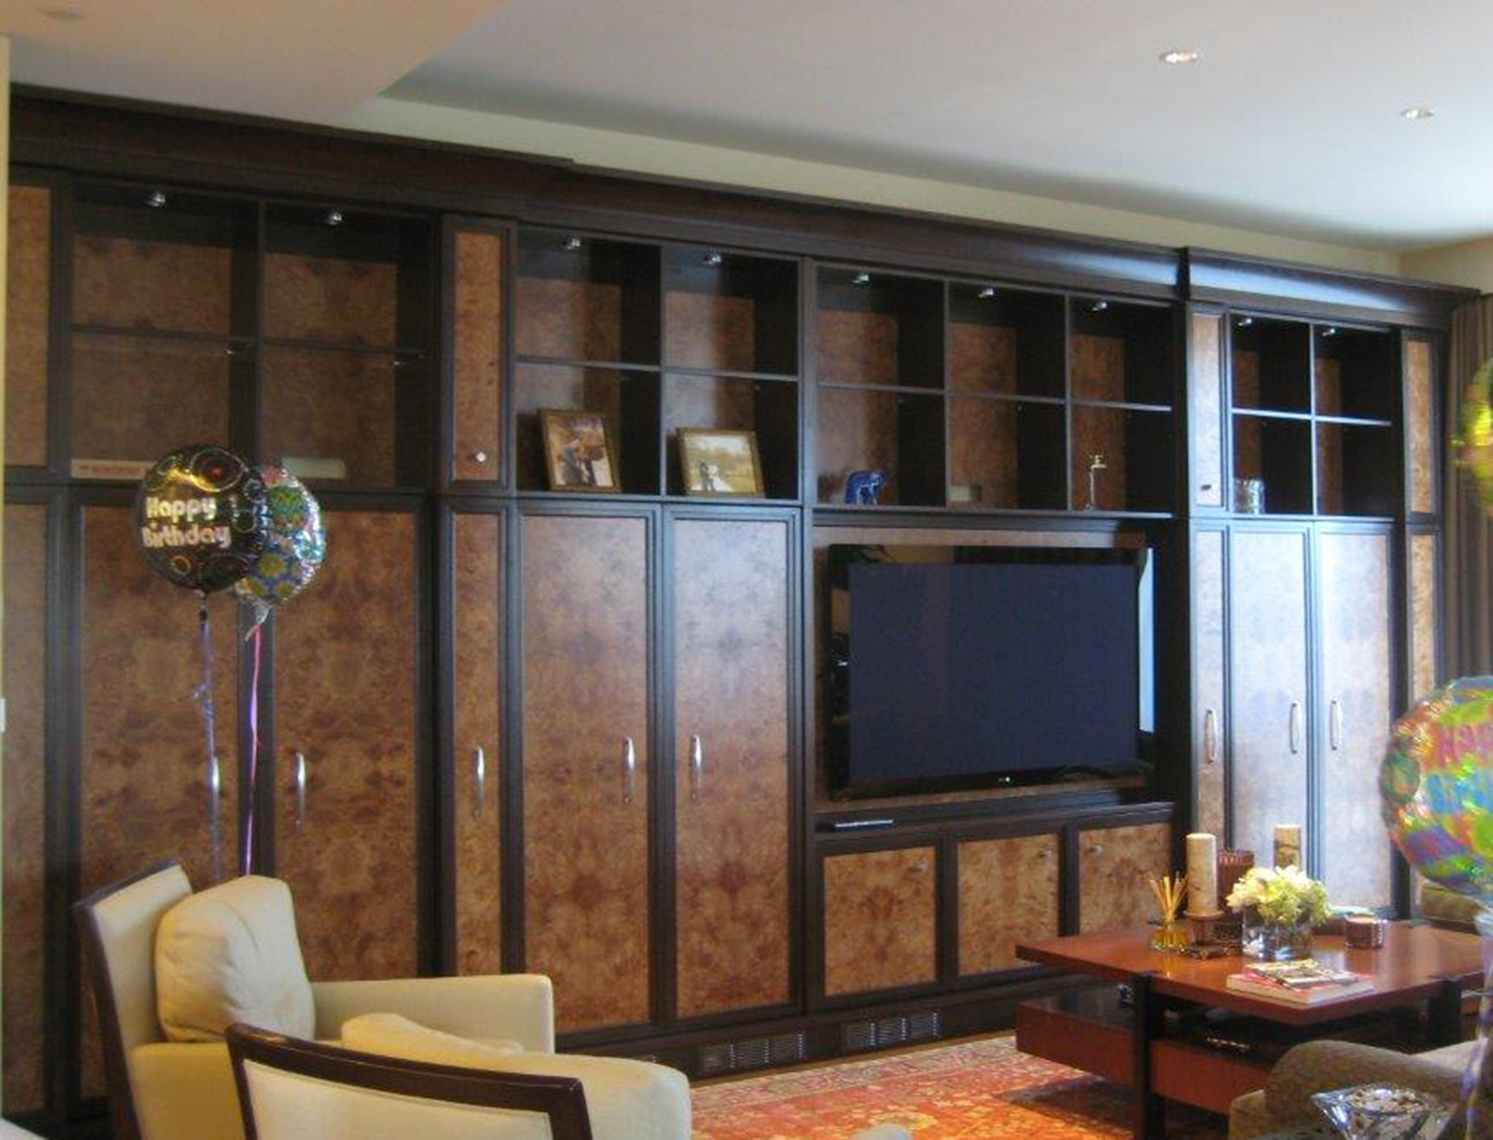 custom cabinets Morris County, NJ-Media-Cabinet-Transitional-Design-Burl-Wood